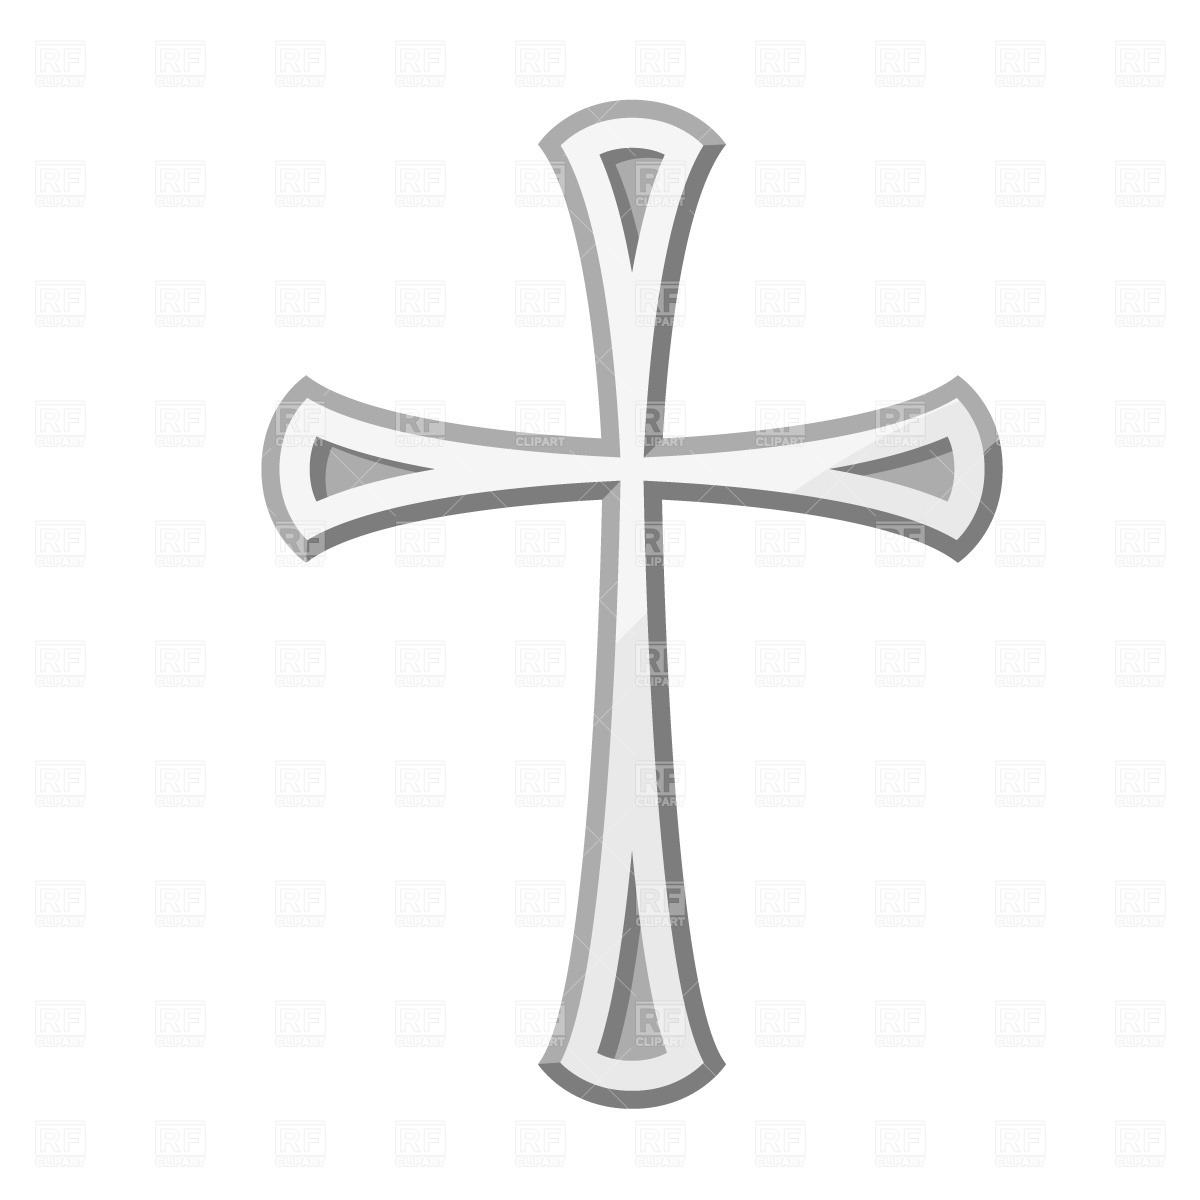 17 Christian Cross Vector Graphic Images